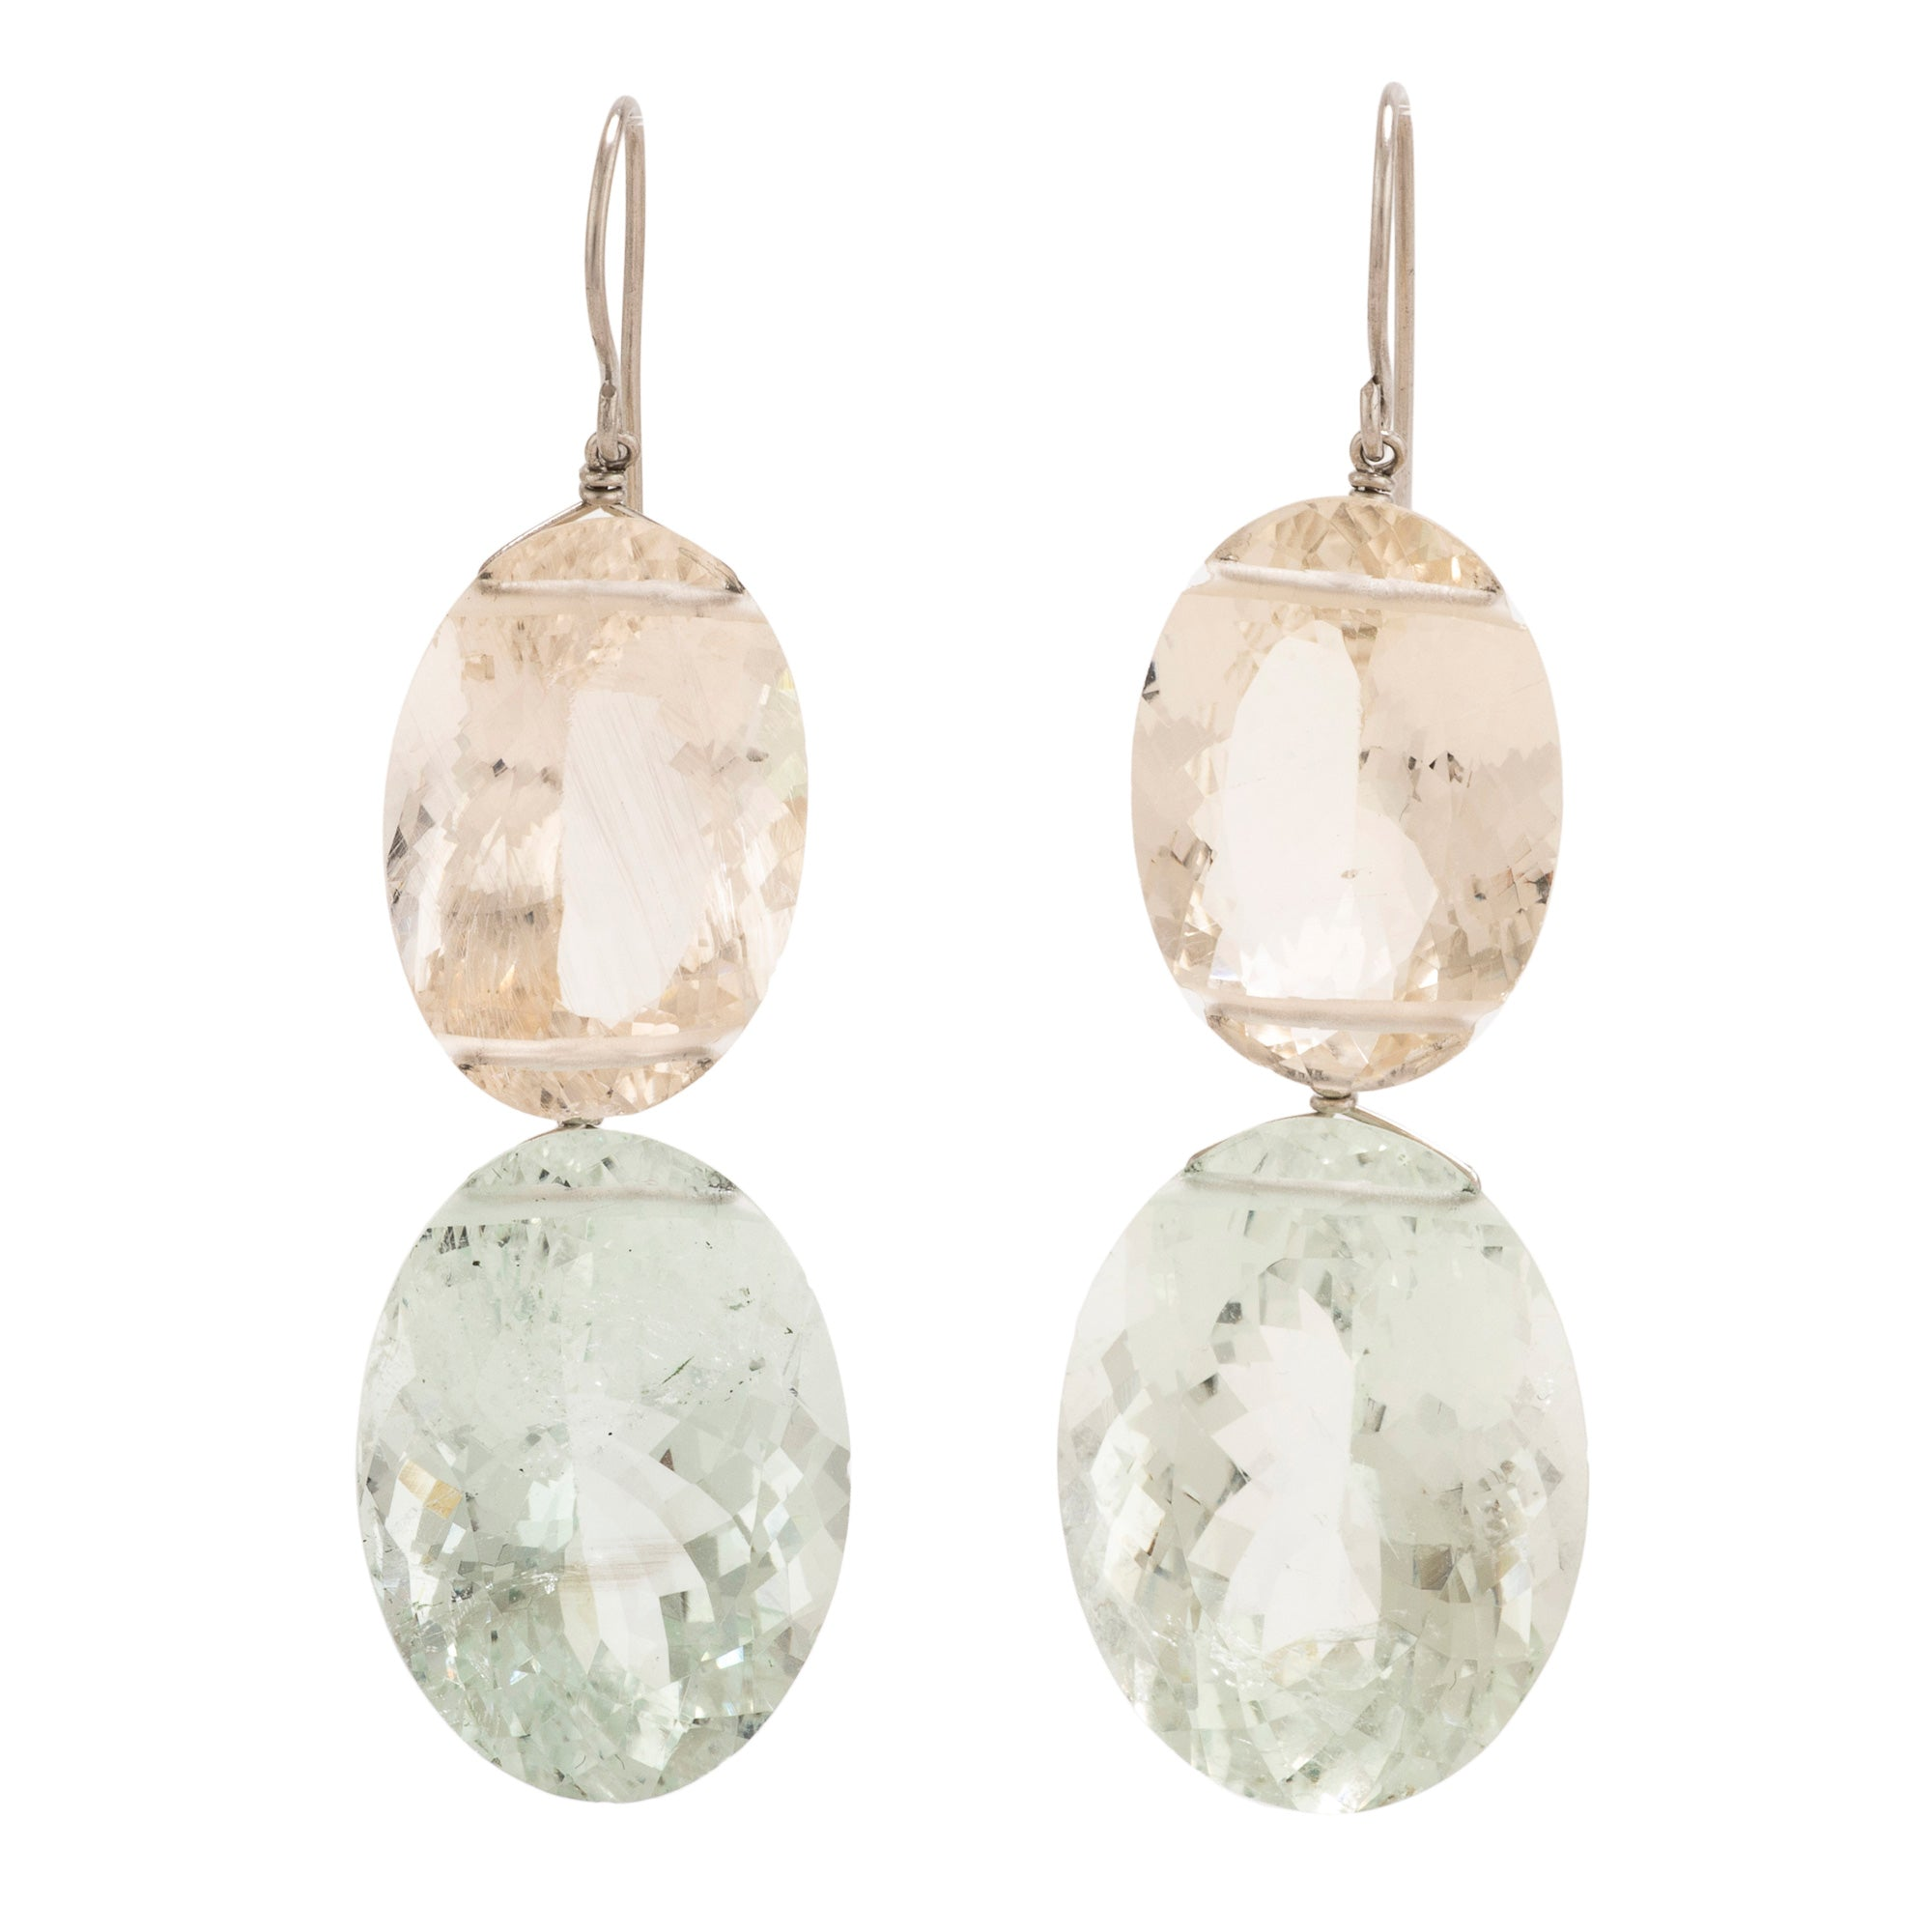 OVAL II aquamarine earrings